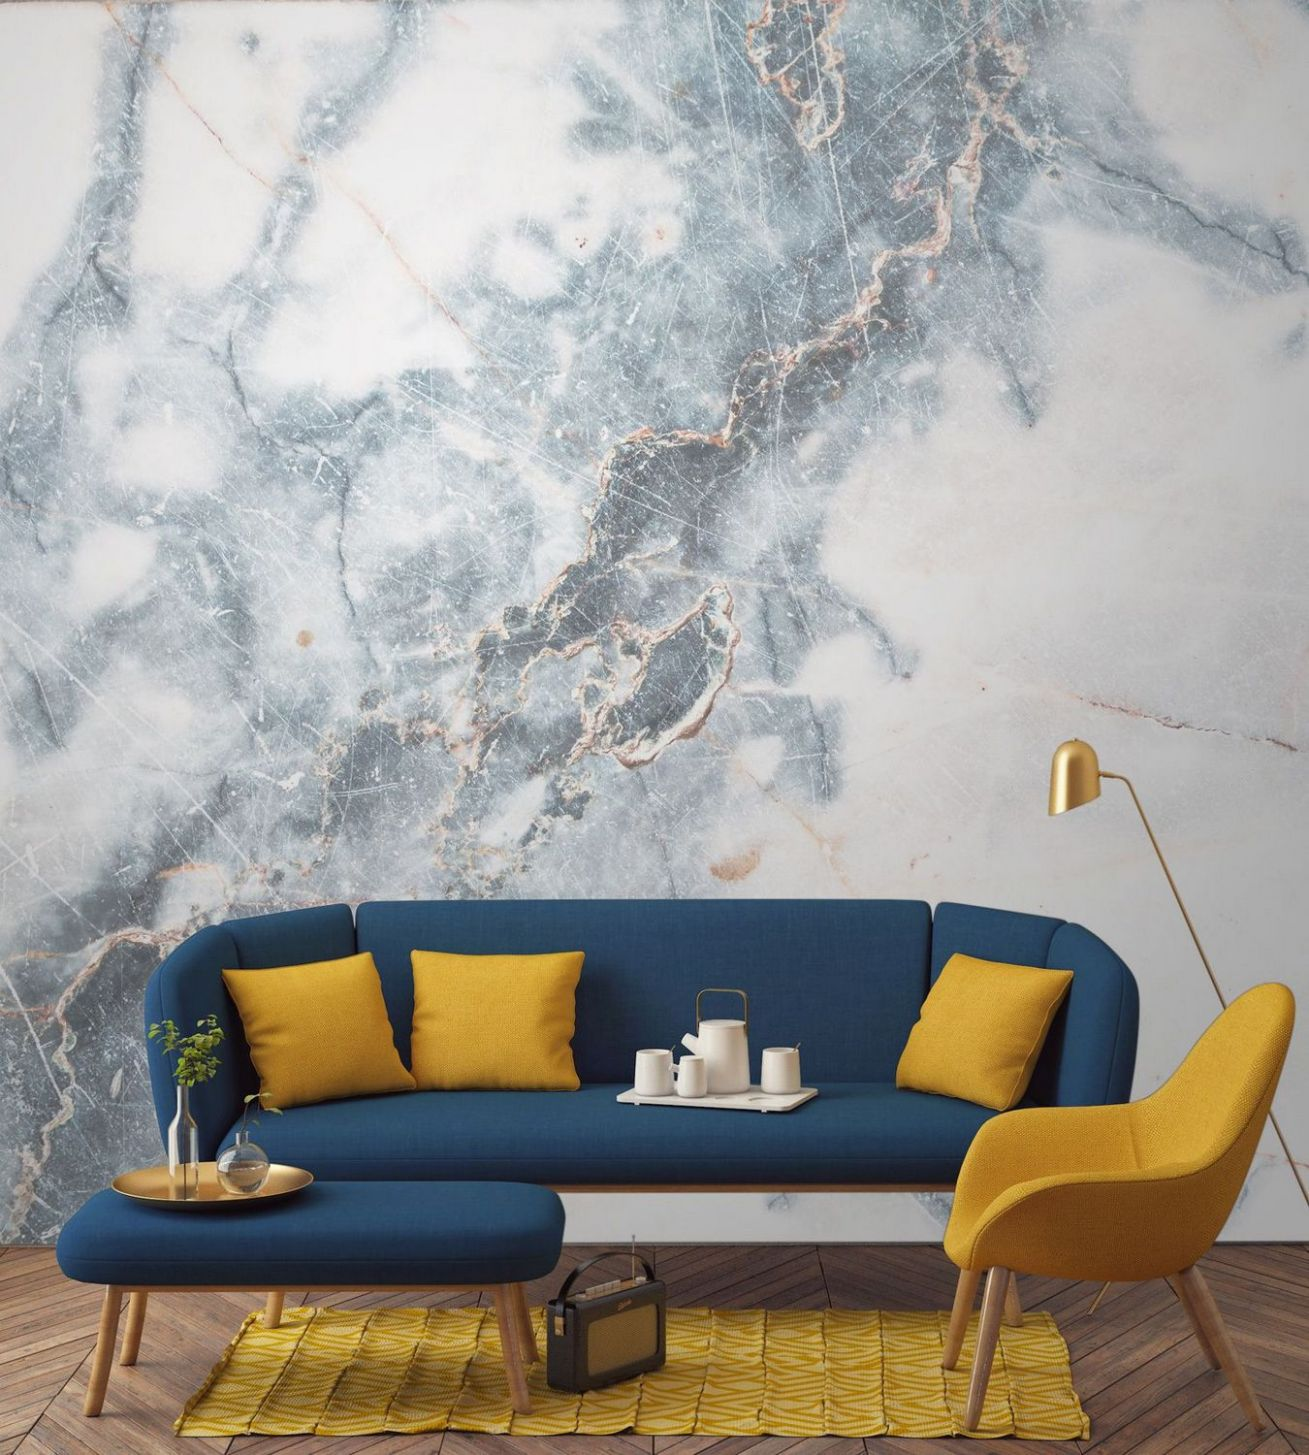 Mustard and blue living room ideas 8 | Inspira Spaces